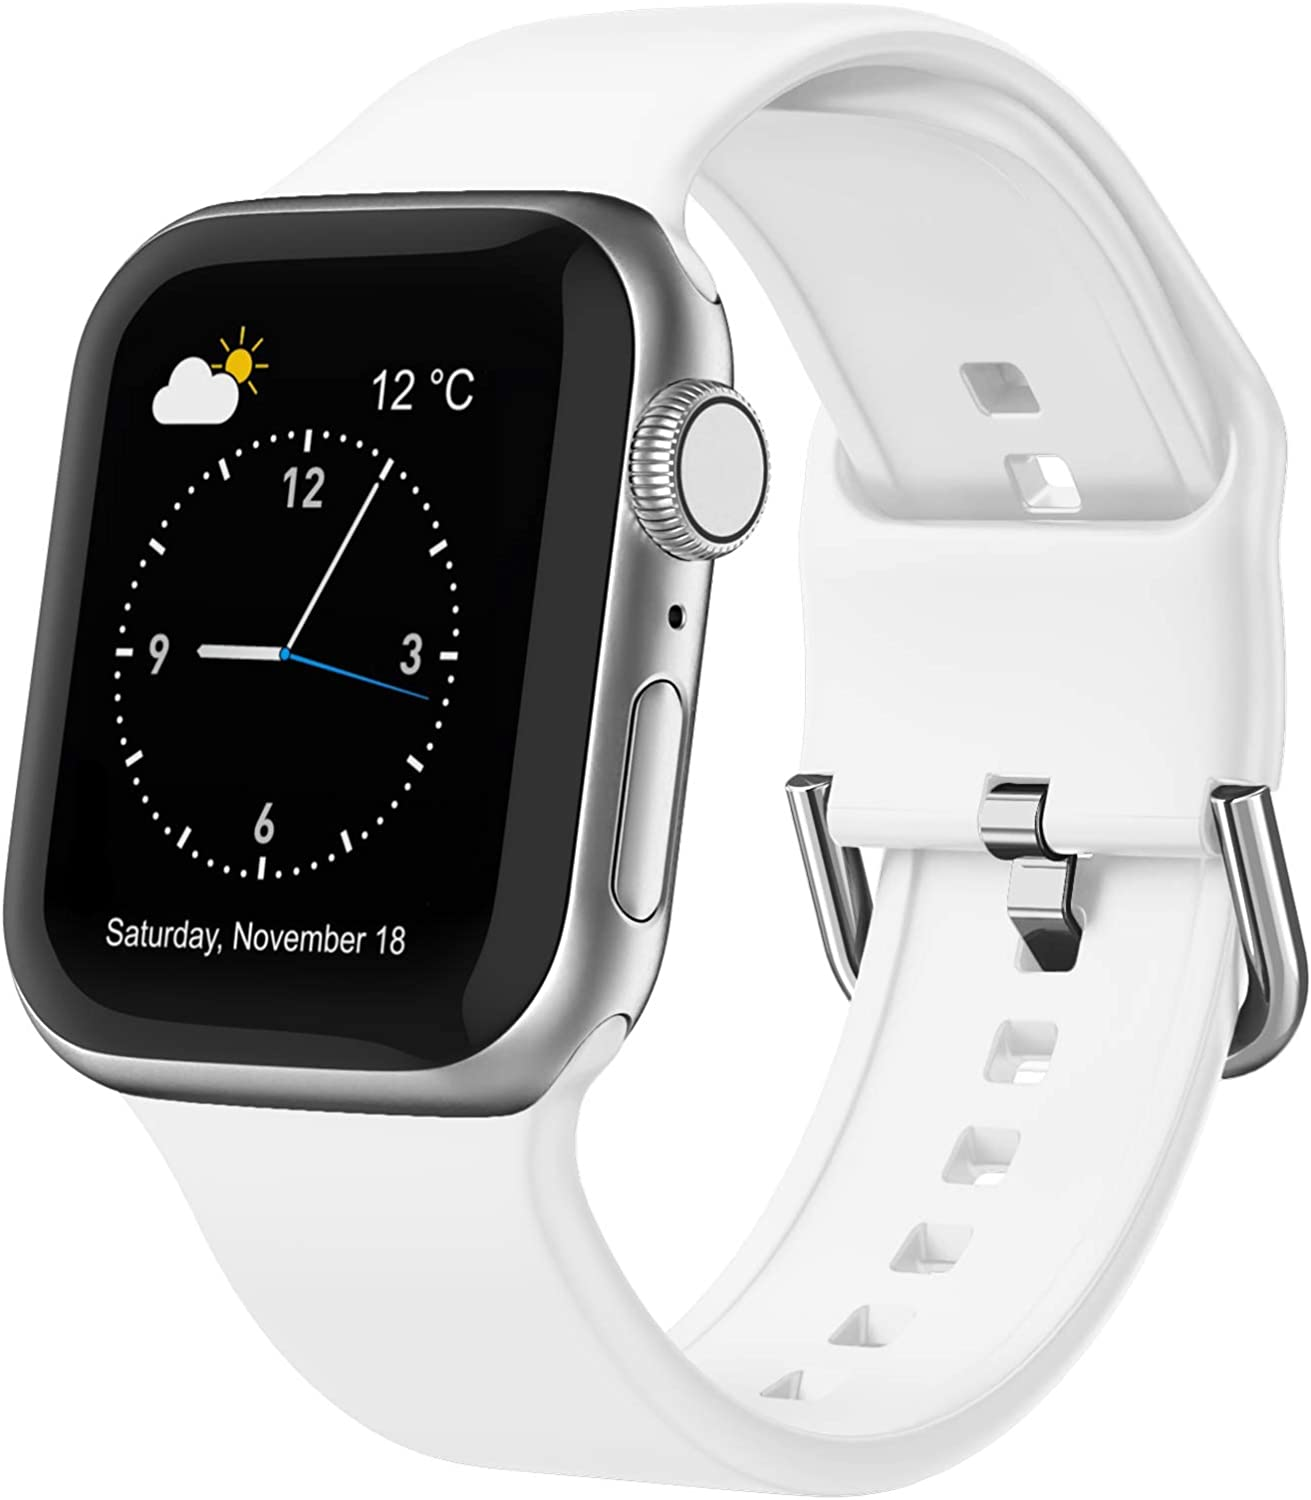 Adepoy Compatible with Apple Watch Bands 40mm 38mm, Soft Silicone Sport Wristbands Replacement Strap with Classic Clasp for iWatch Series SE 6 5 4 3 2 1 for Women Men, White 38/40mm